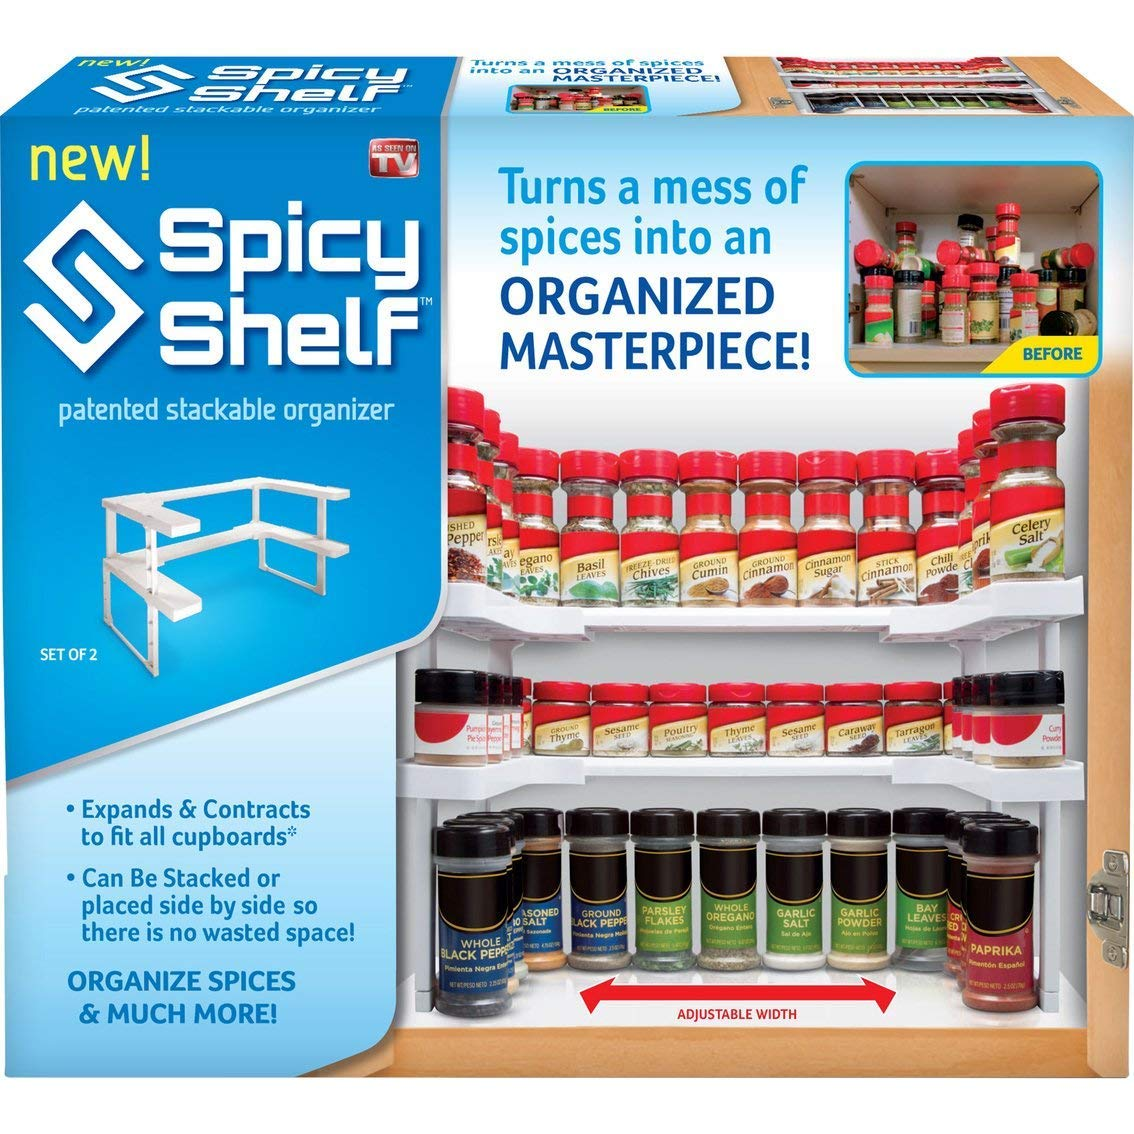 Spicy Shelf, Spice Rack, Stackable organizer, Kitchen Spice Rack, Bathroom organizer, Cosmetics Storage organizer. Holds Up to 64 Spices Storage Adjustable, Easy to See All Spices, White